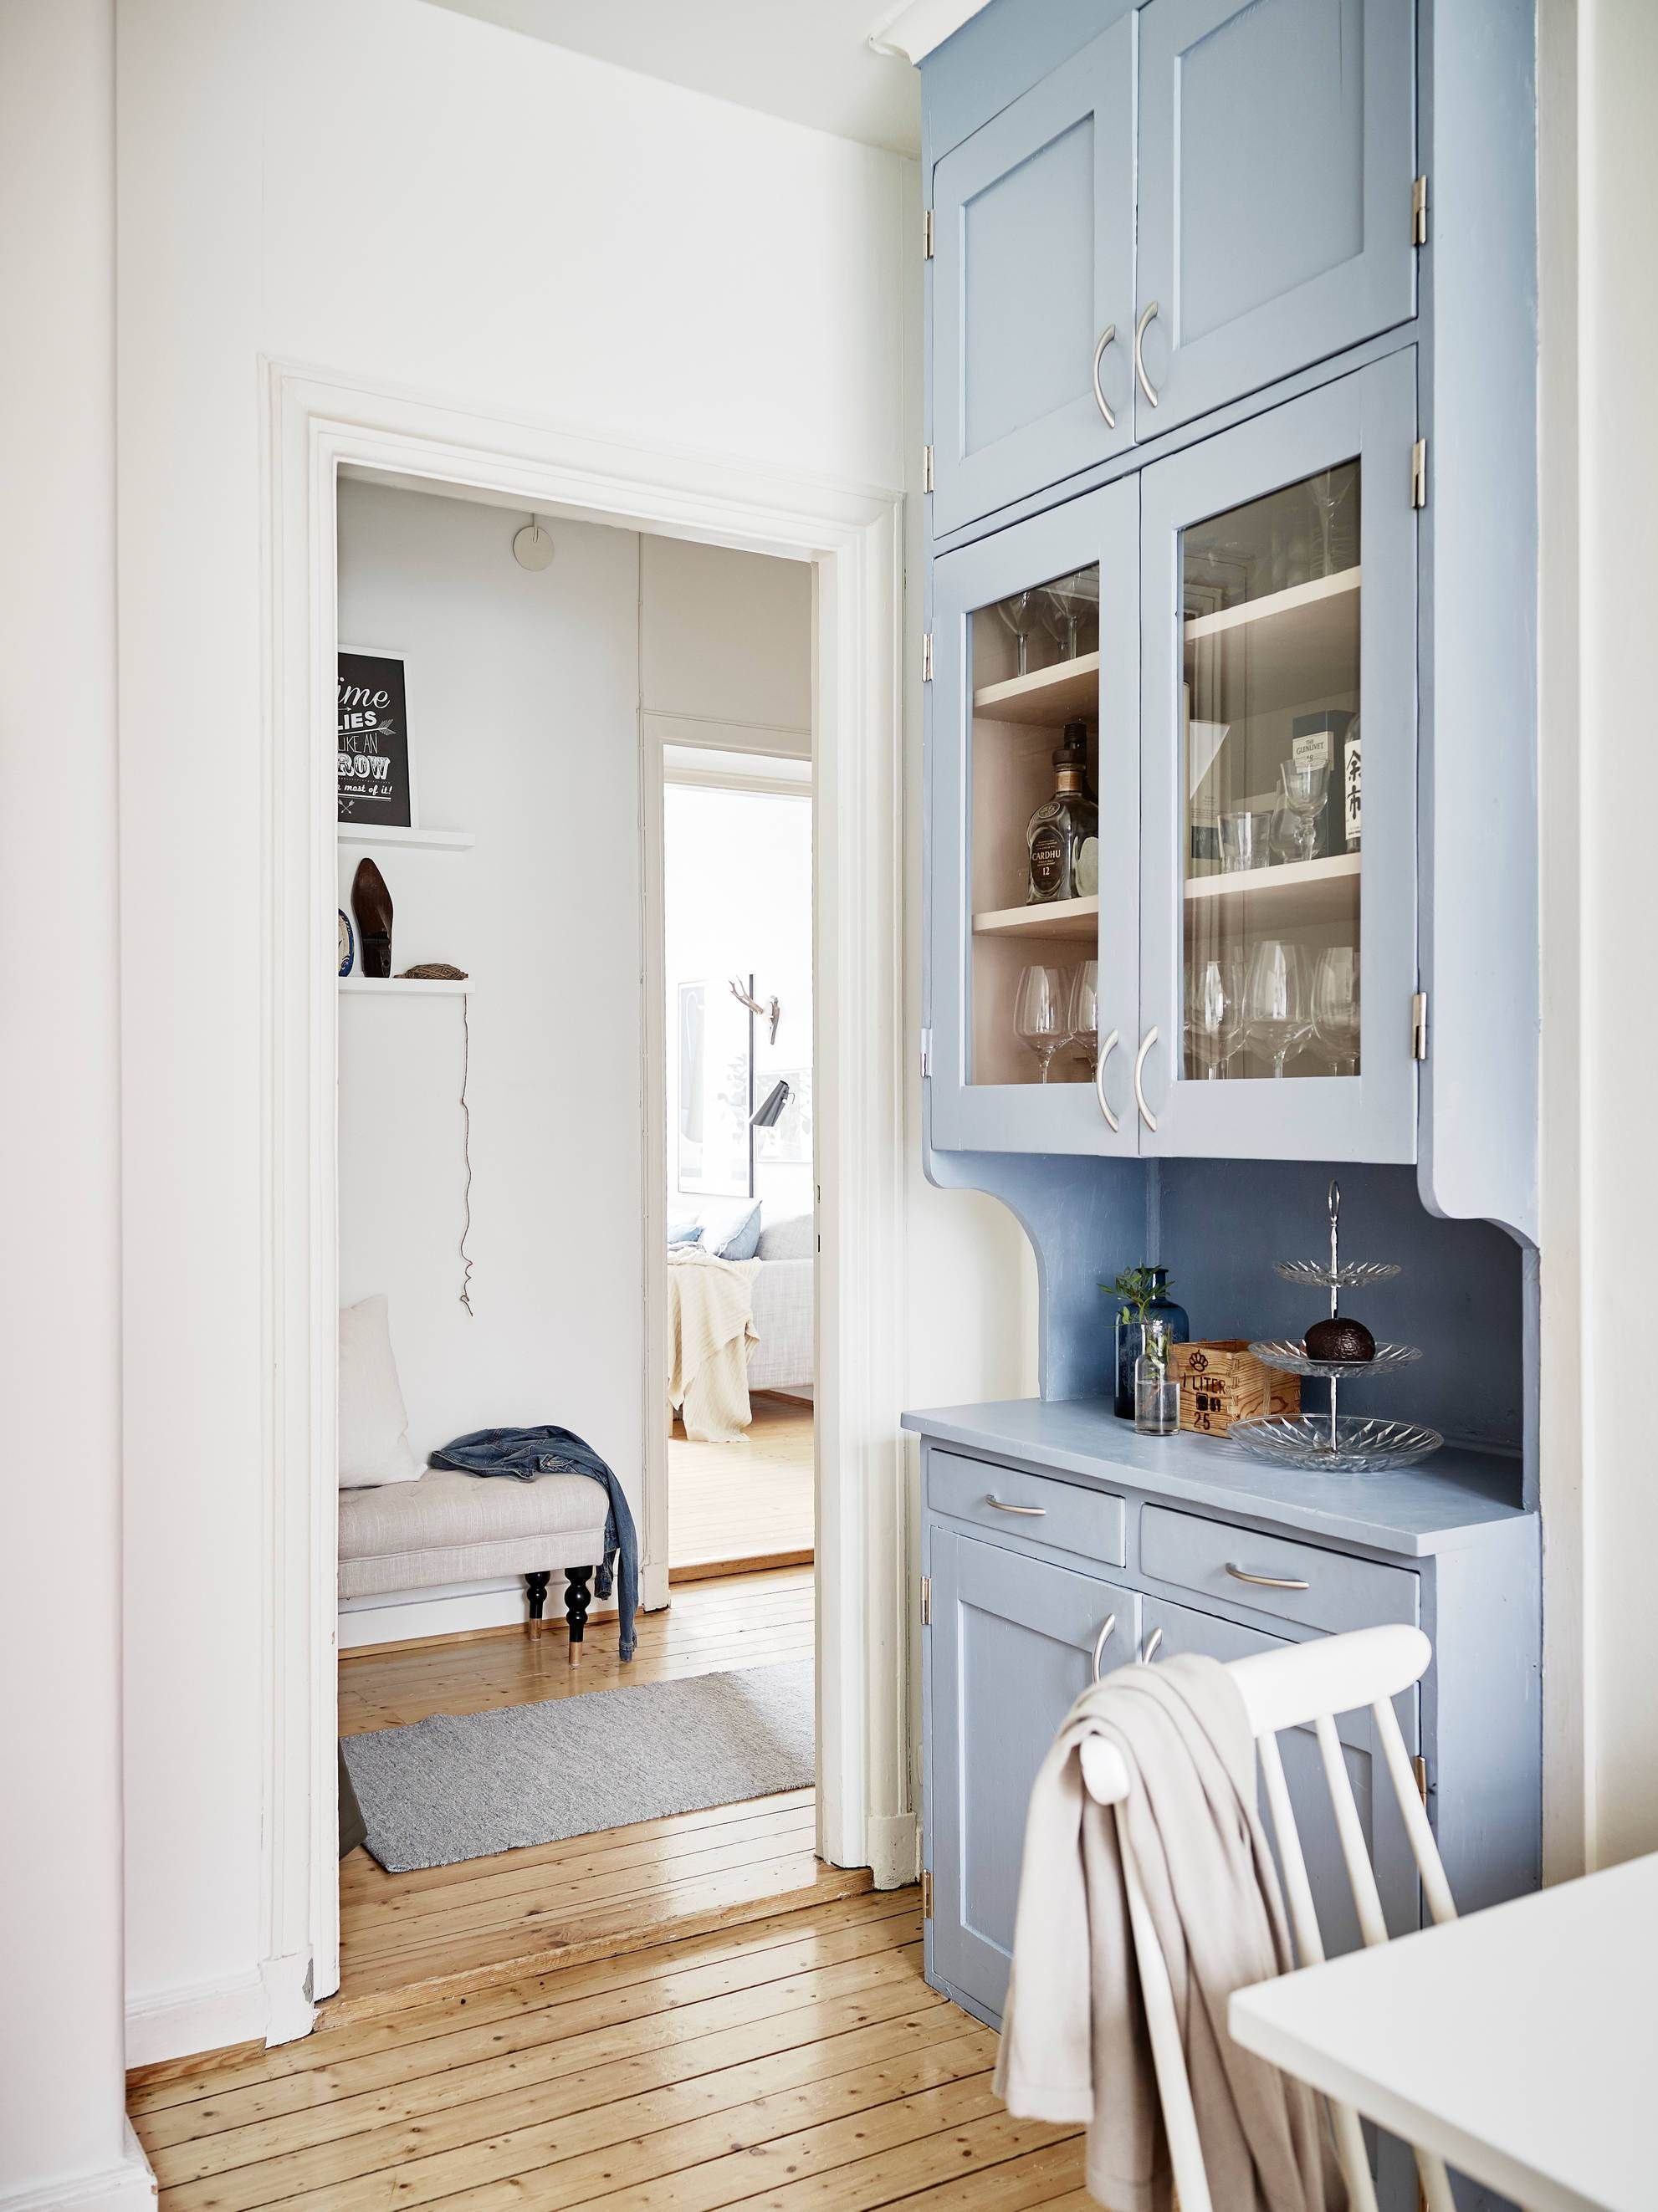 Pin by M.K.N Designs on kitchen | Pinterest | Maison, Deco and Jolie ...